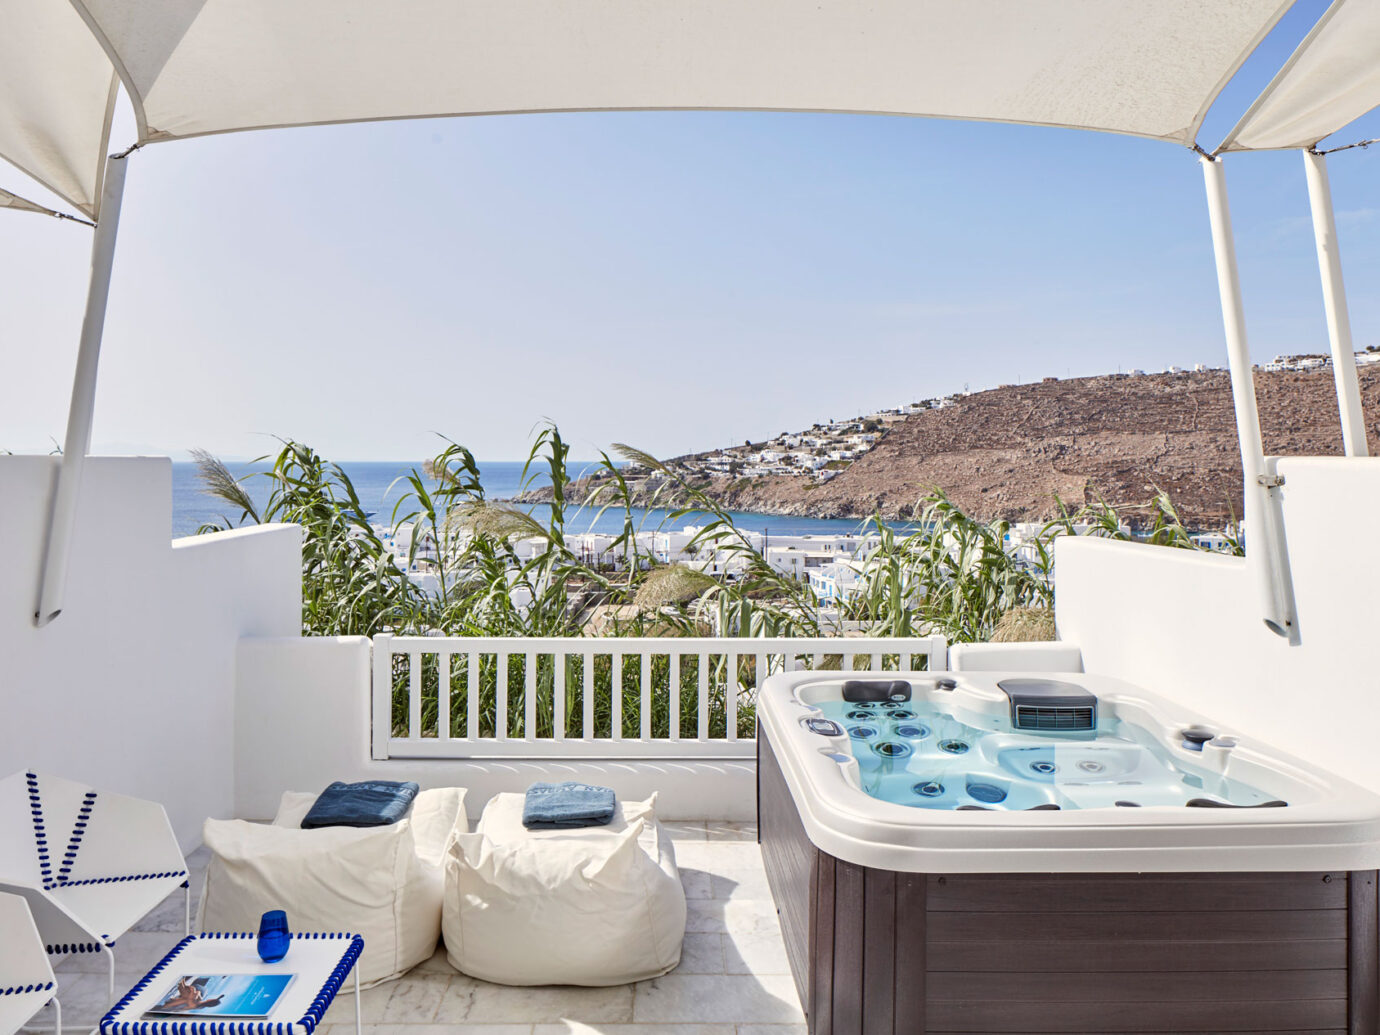 outdoor hot tub and ocean view from Myconian Ambassador Hotel